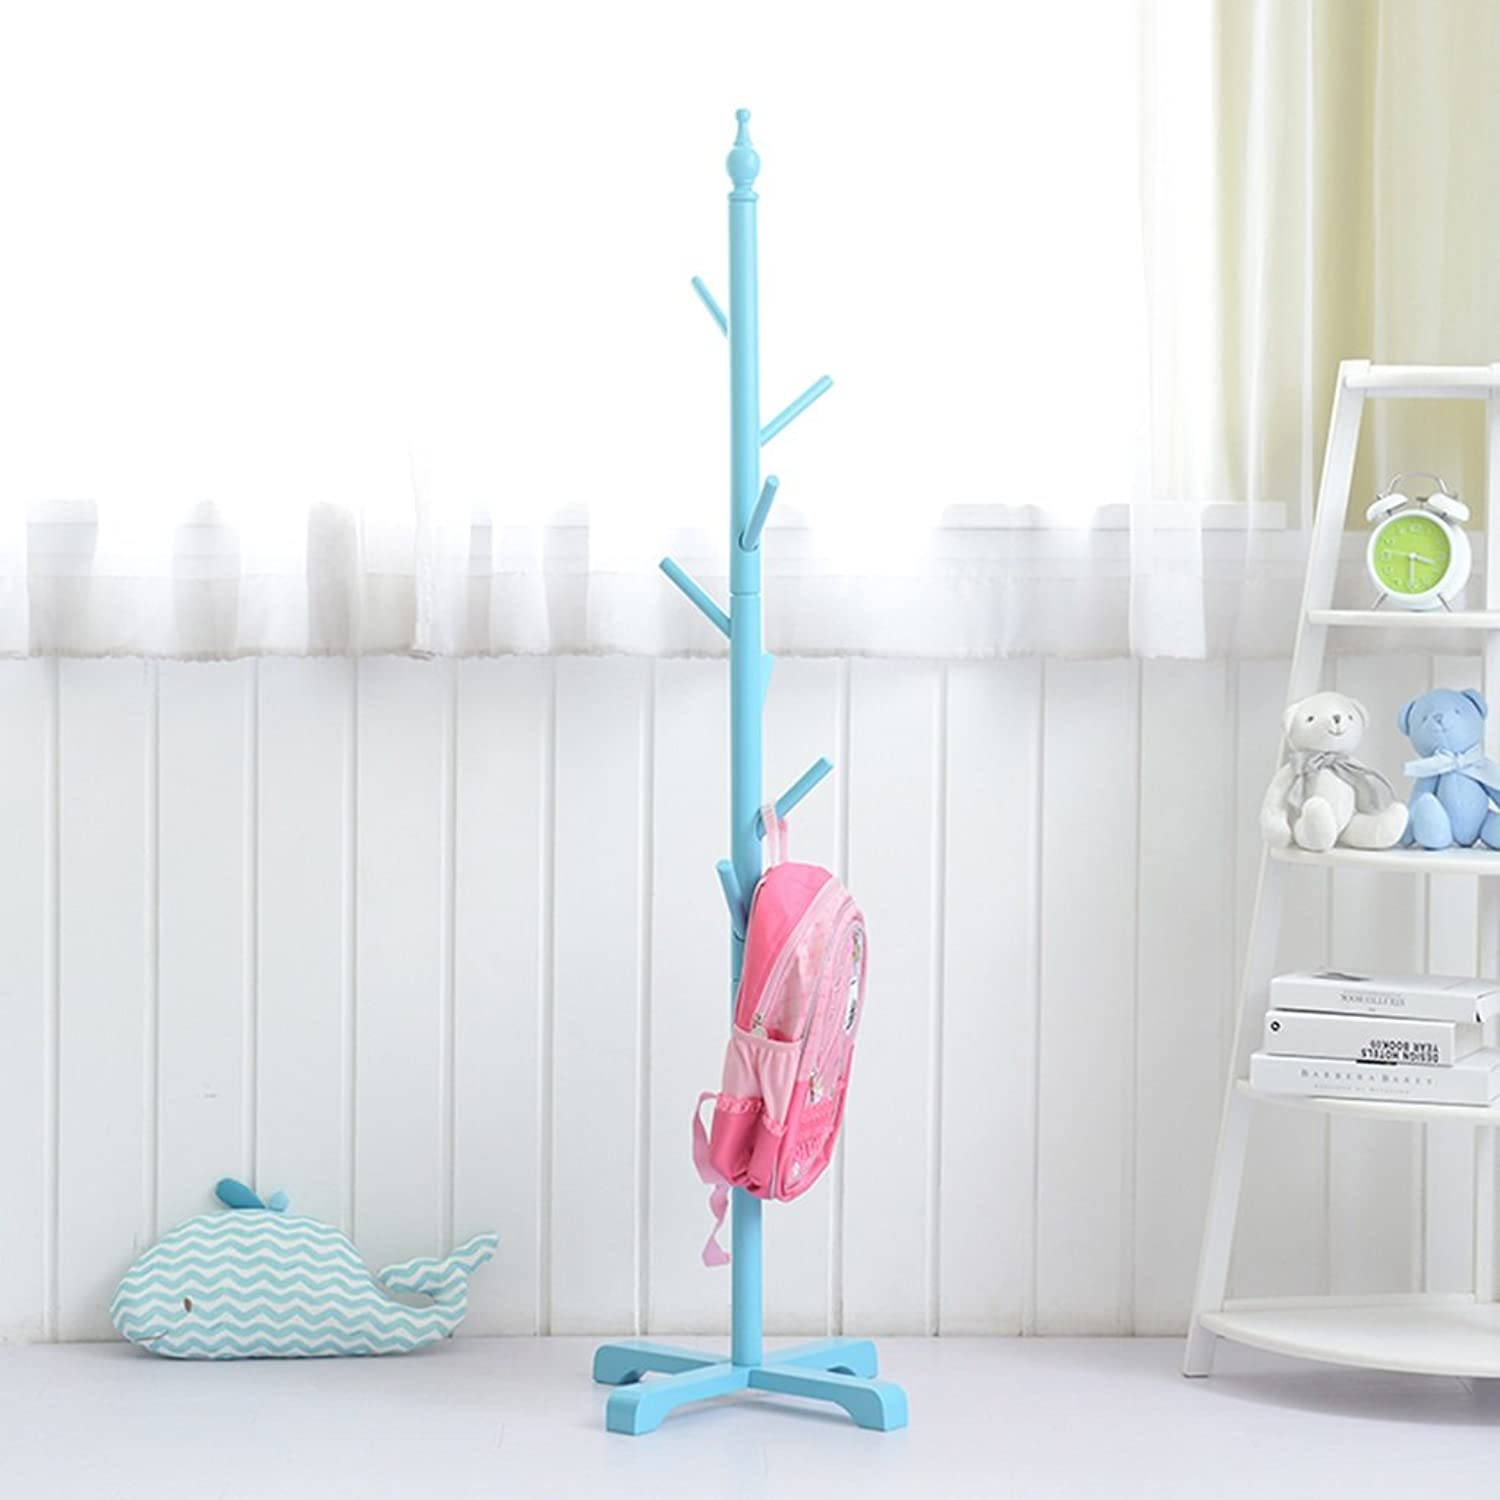 Coat Rack Creative Floor Hanger Household Clothes Rack European Simple   5 color Optional (color   bluee)